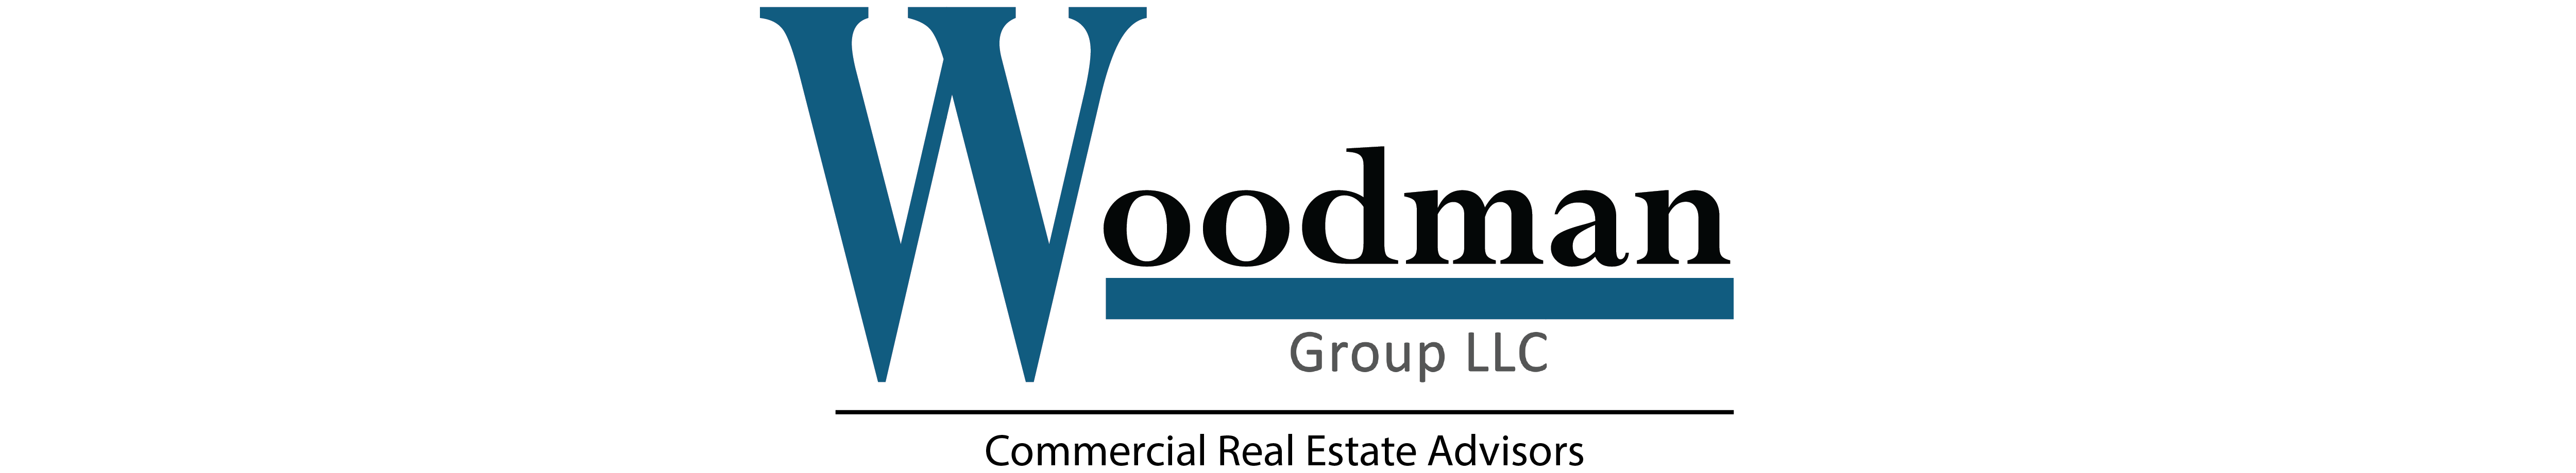 Woodman Group LLC